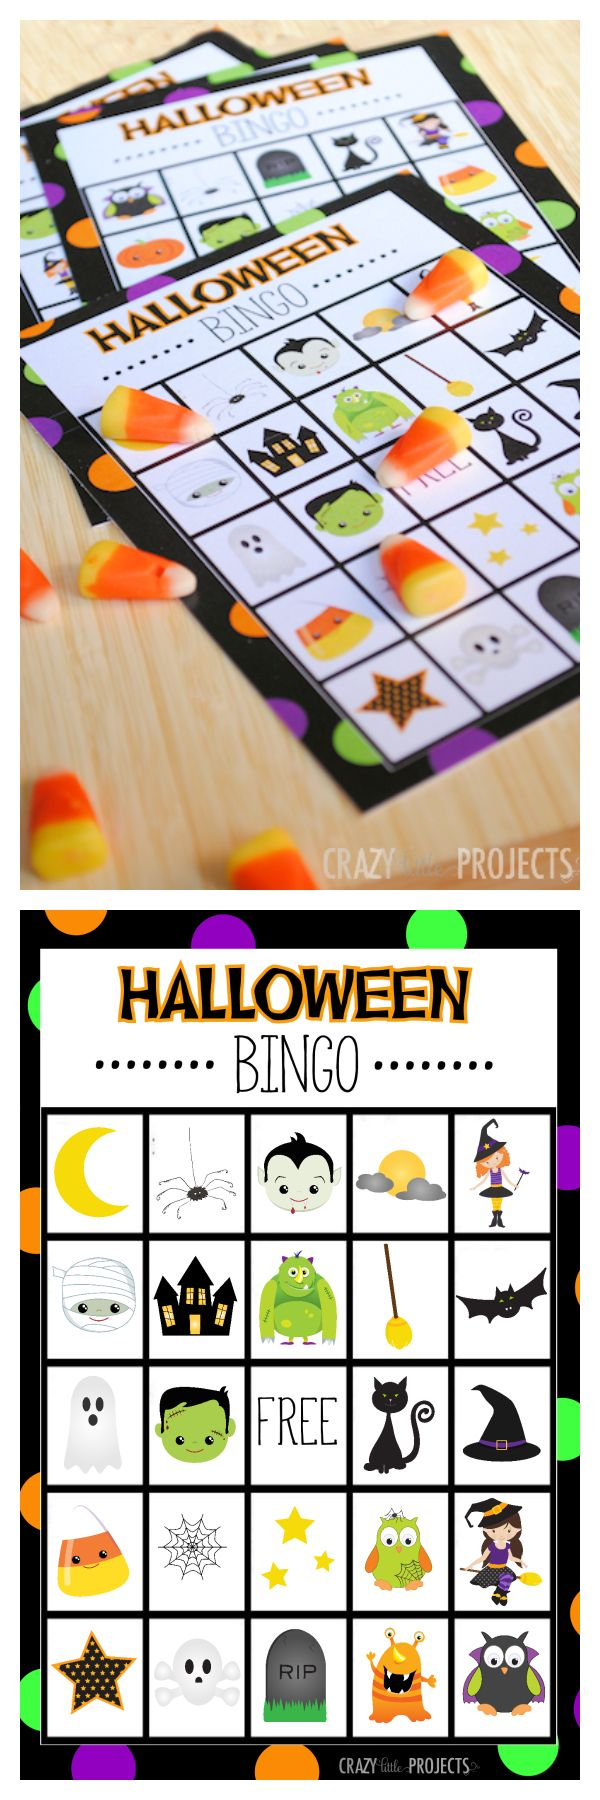 free printable halloween bingo game - Halloween Party Games Toddlers